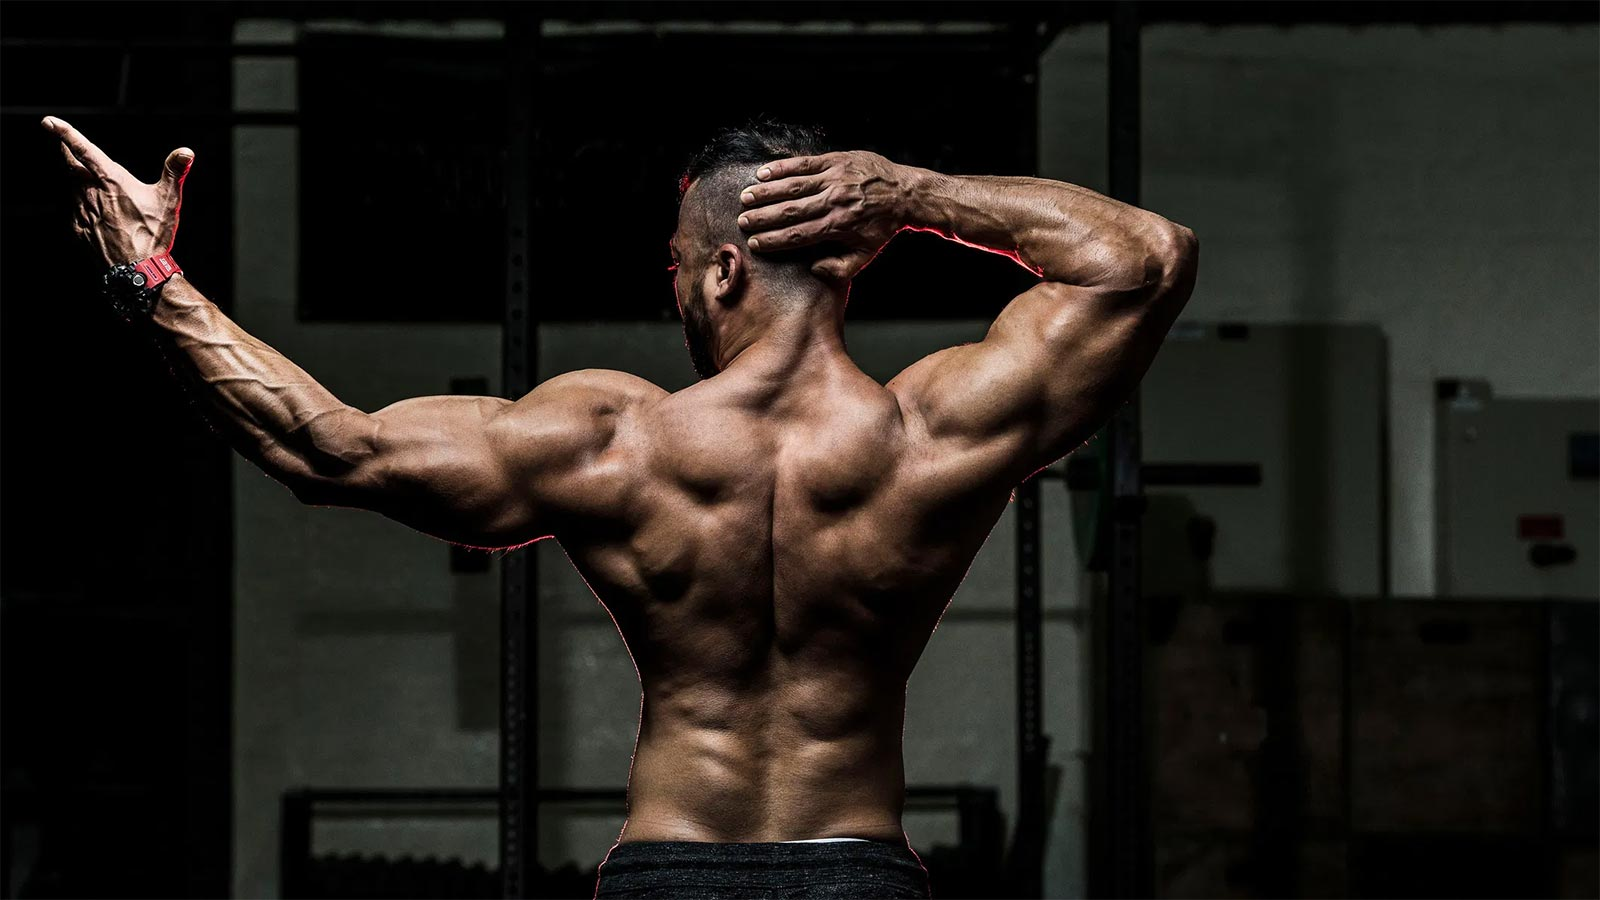 Top 5 back exercises for an amazing back workout